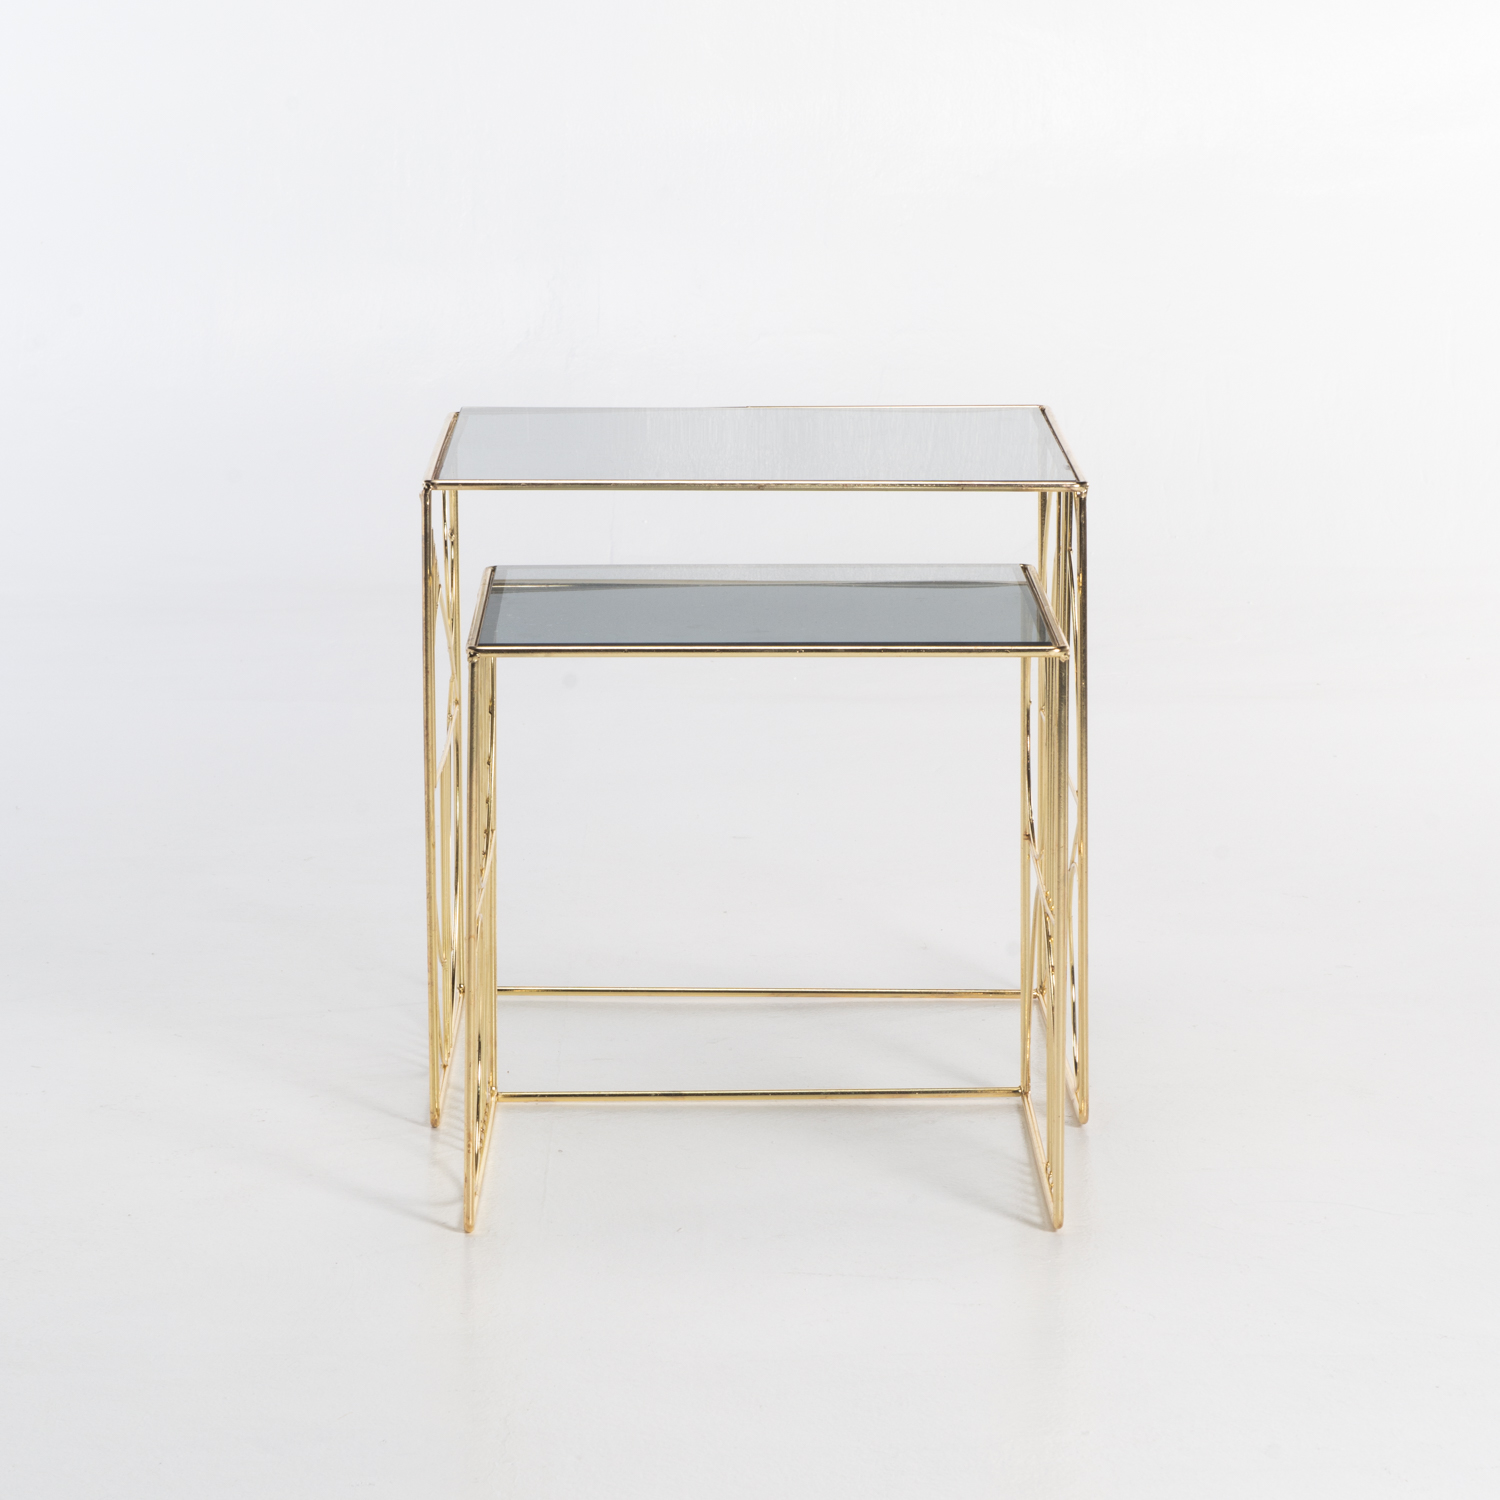 ARES SET OF 2 GLASS TOP TABLES